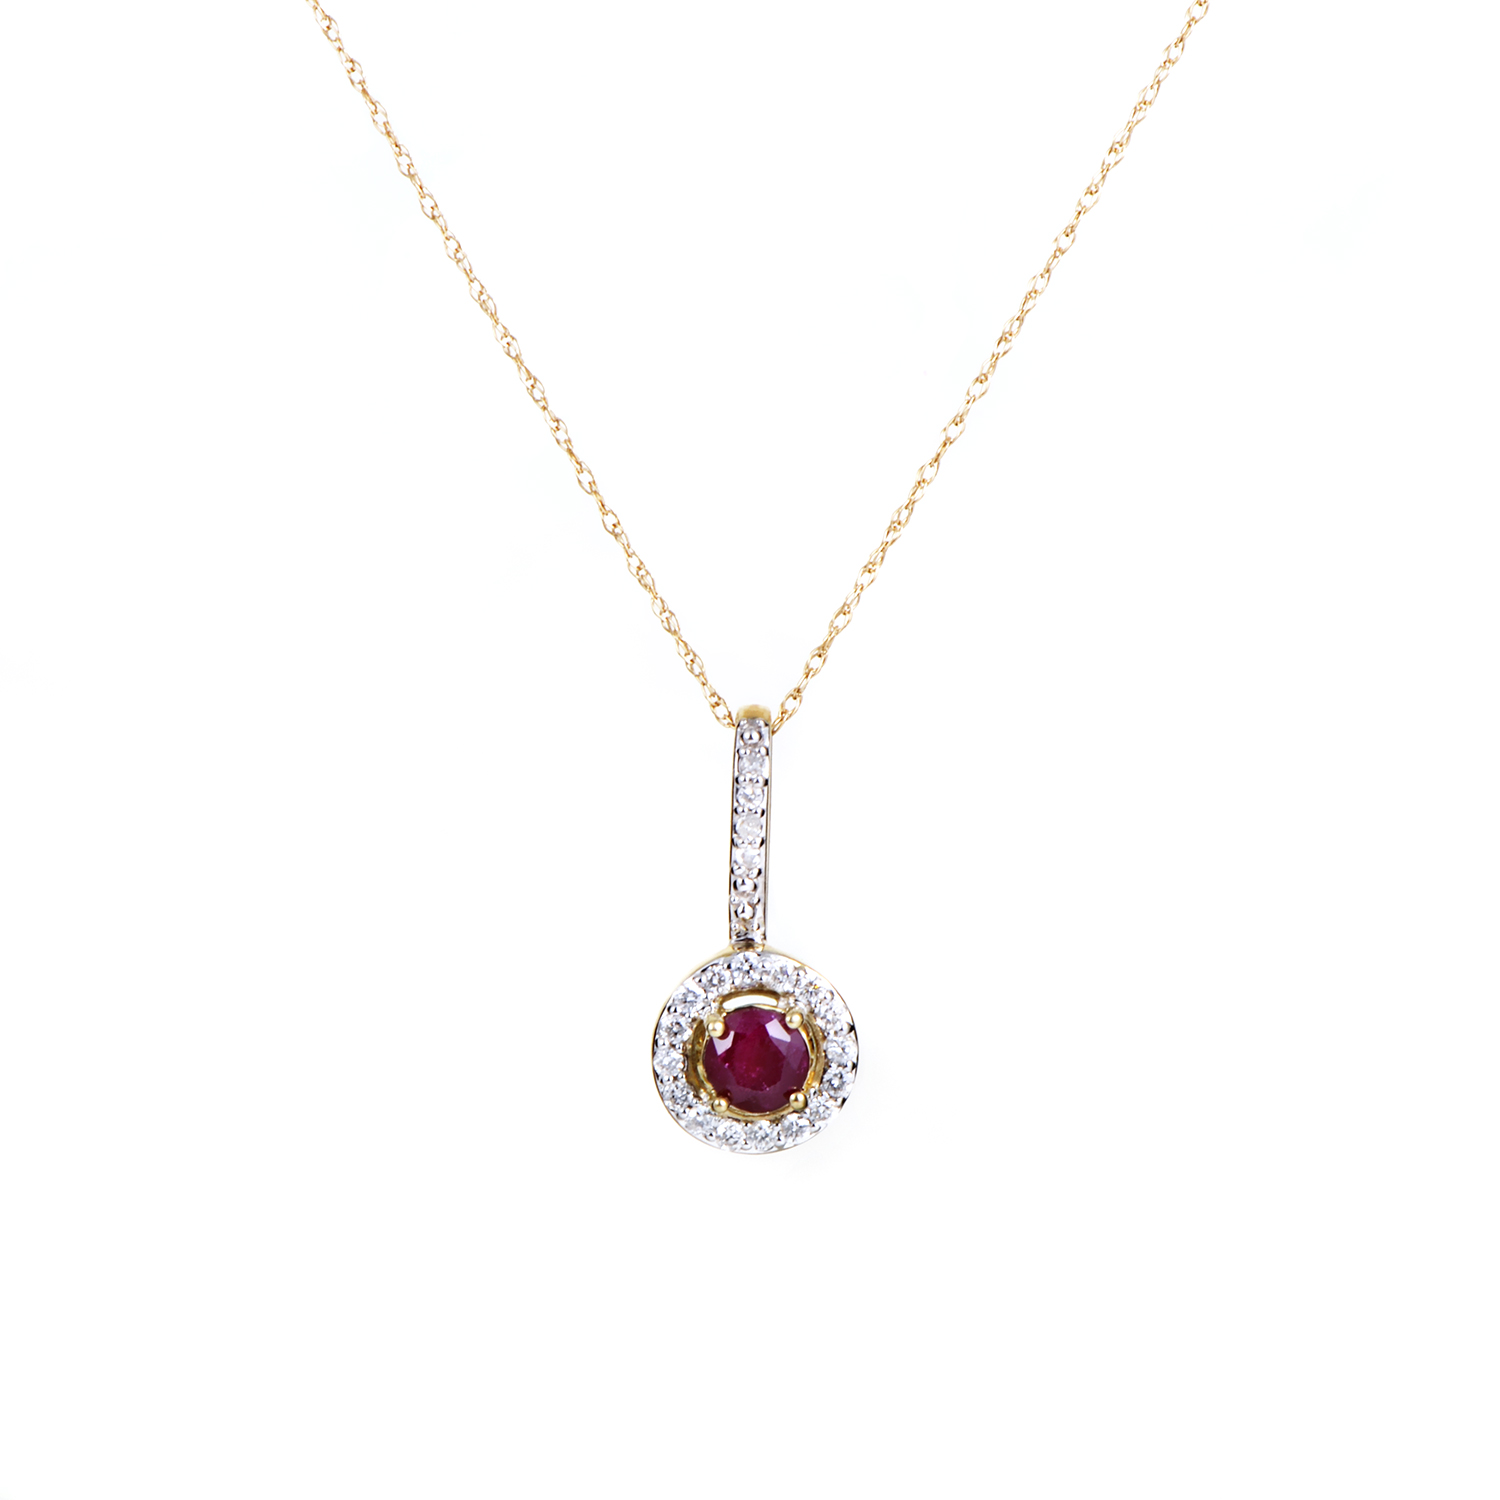 Women's 14K Yellow Gold Diamond & Ruby Solitaire Pendant Necklace PD4-15280YRU